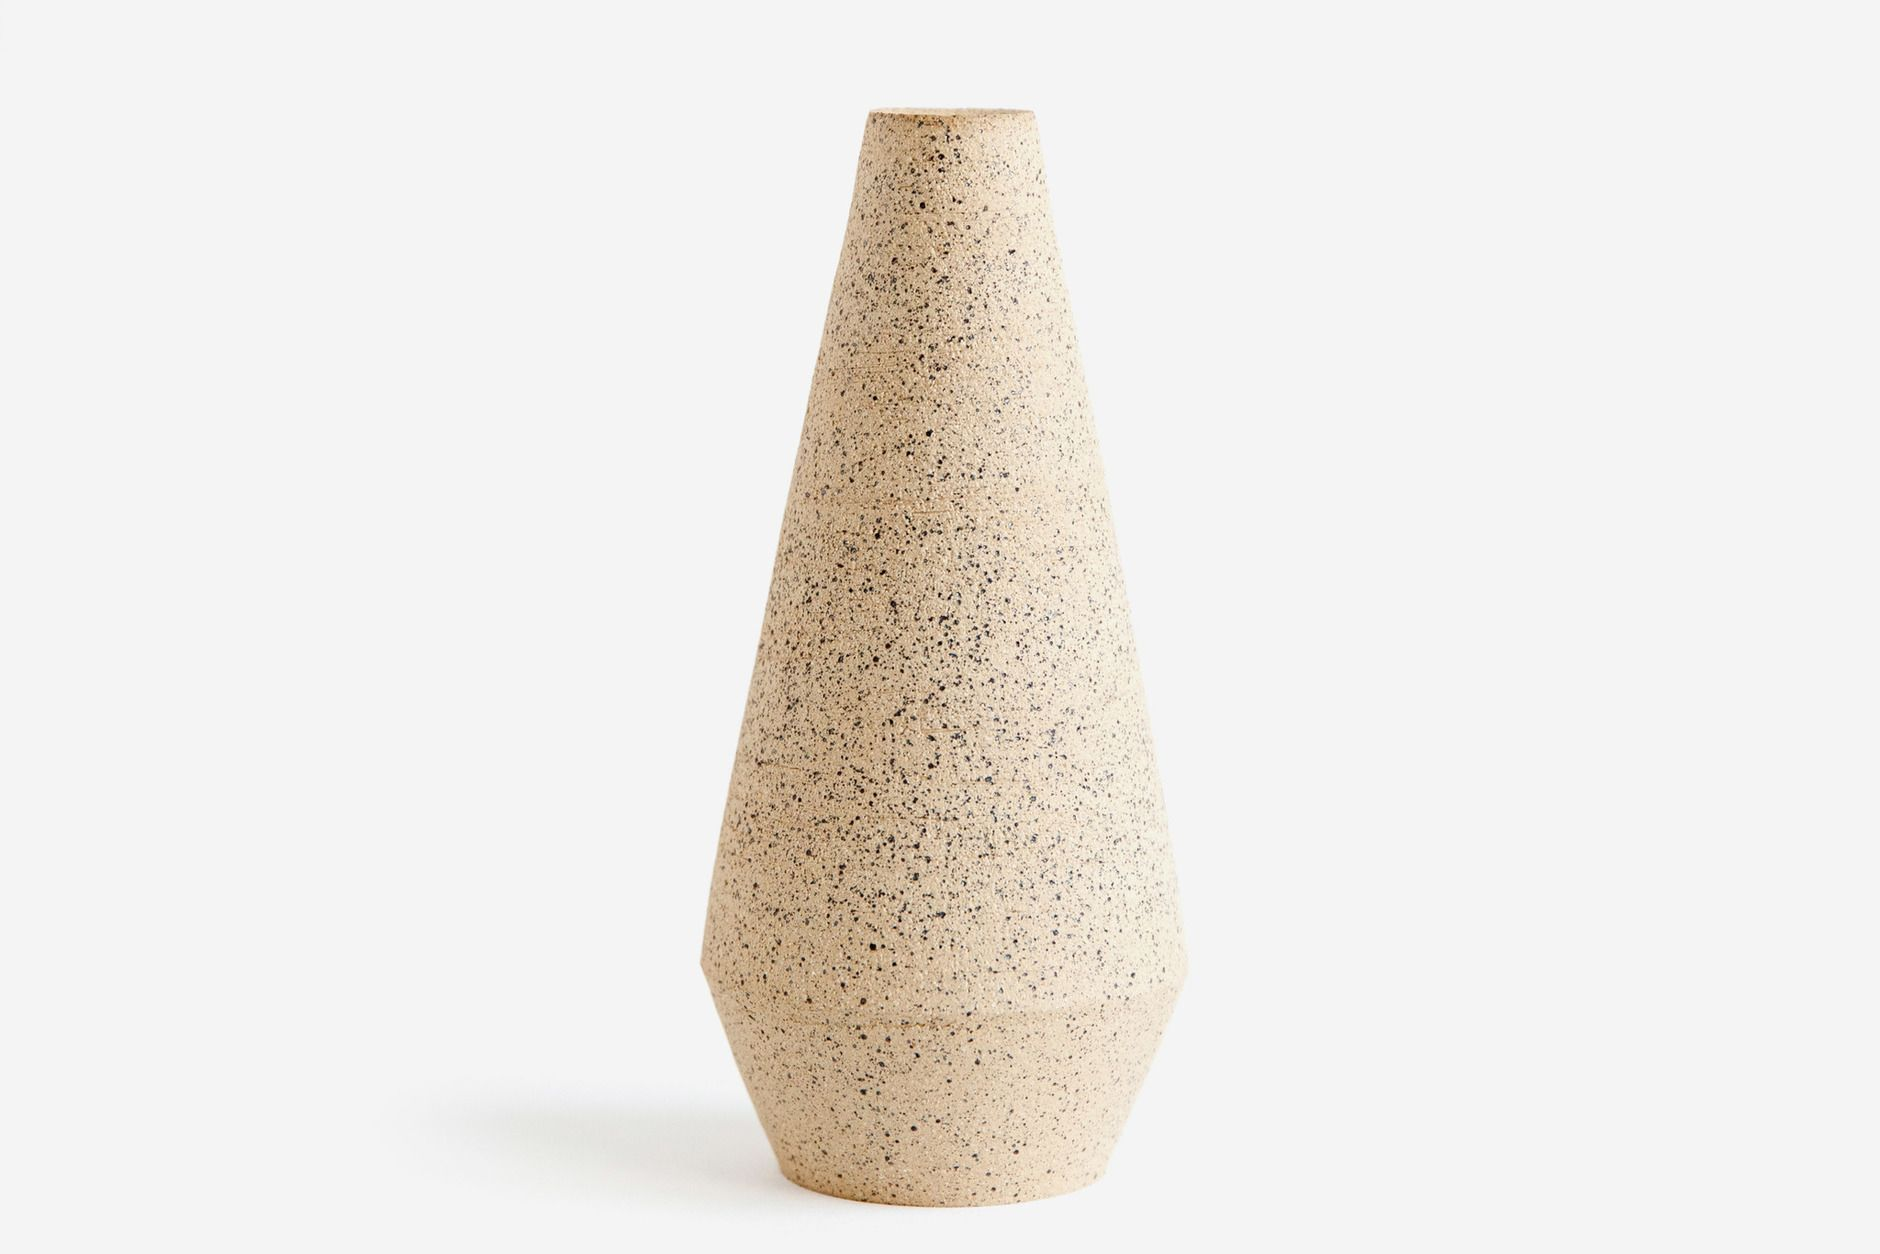 Sand Speckled Vase By Heather Stewart Harvey For Of A Kind Vase Clay Vase Colorful Interiors